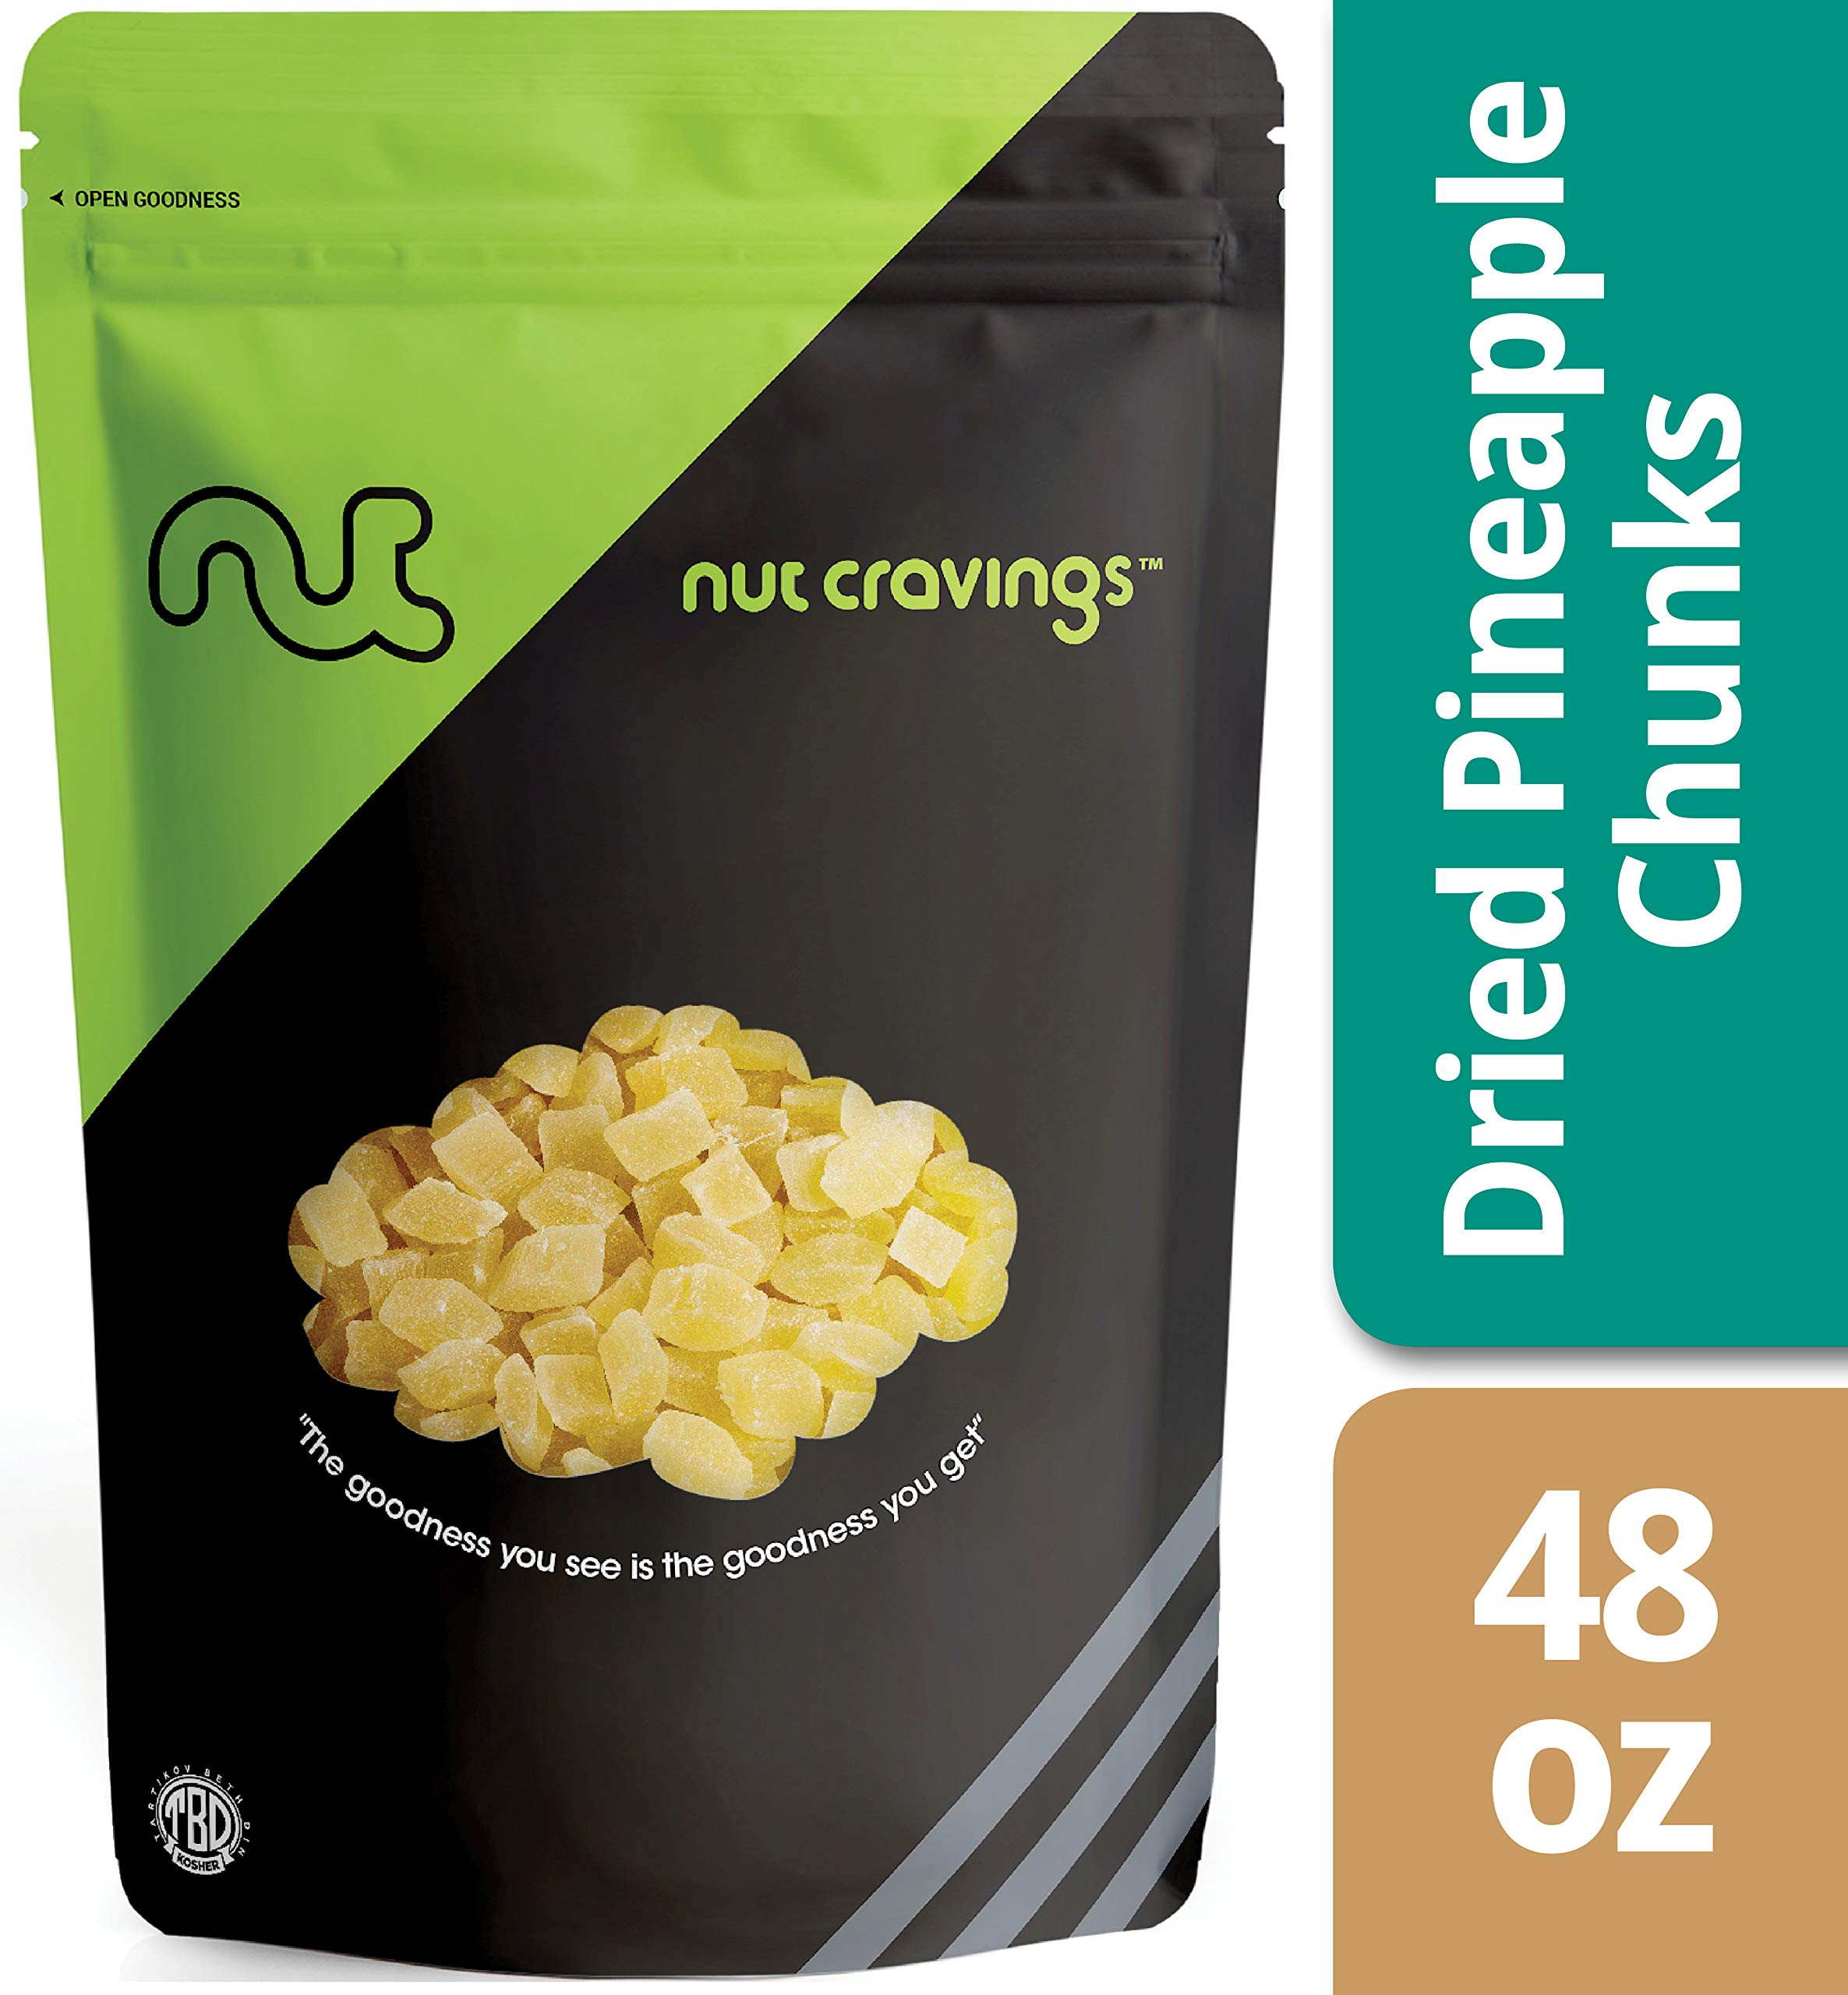 Nut Cravings Dried Pineapple Chunks - Sweet, Healthy Dehydrated Fruit Snacks with Sugar Added - 48 Ounce by Nut Cravings